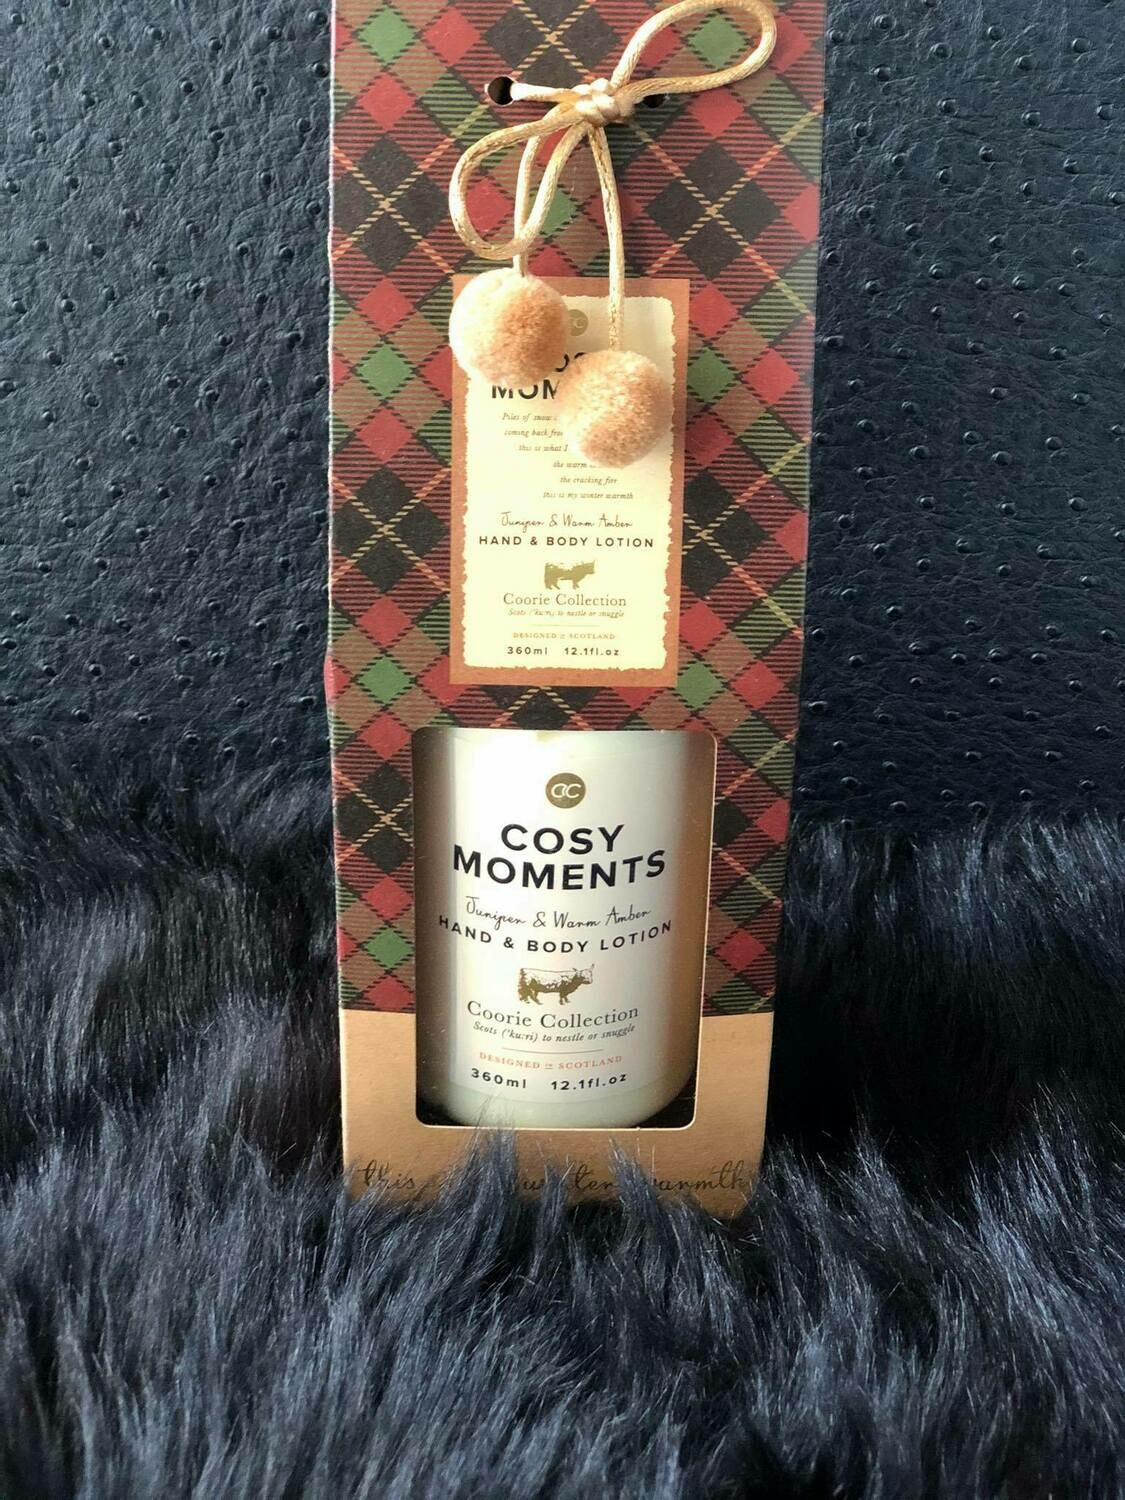 Cosy moments - hand & body lotion